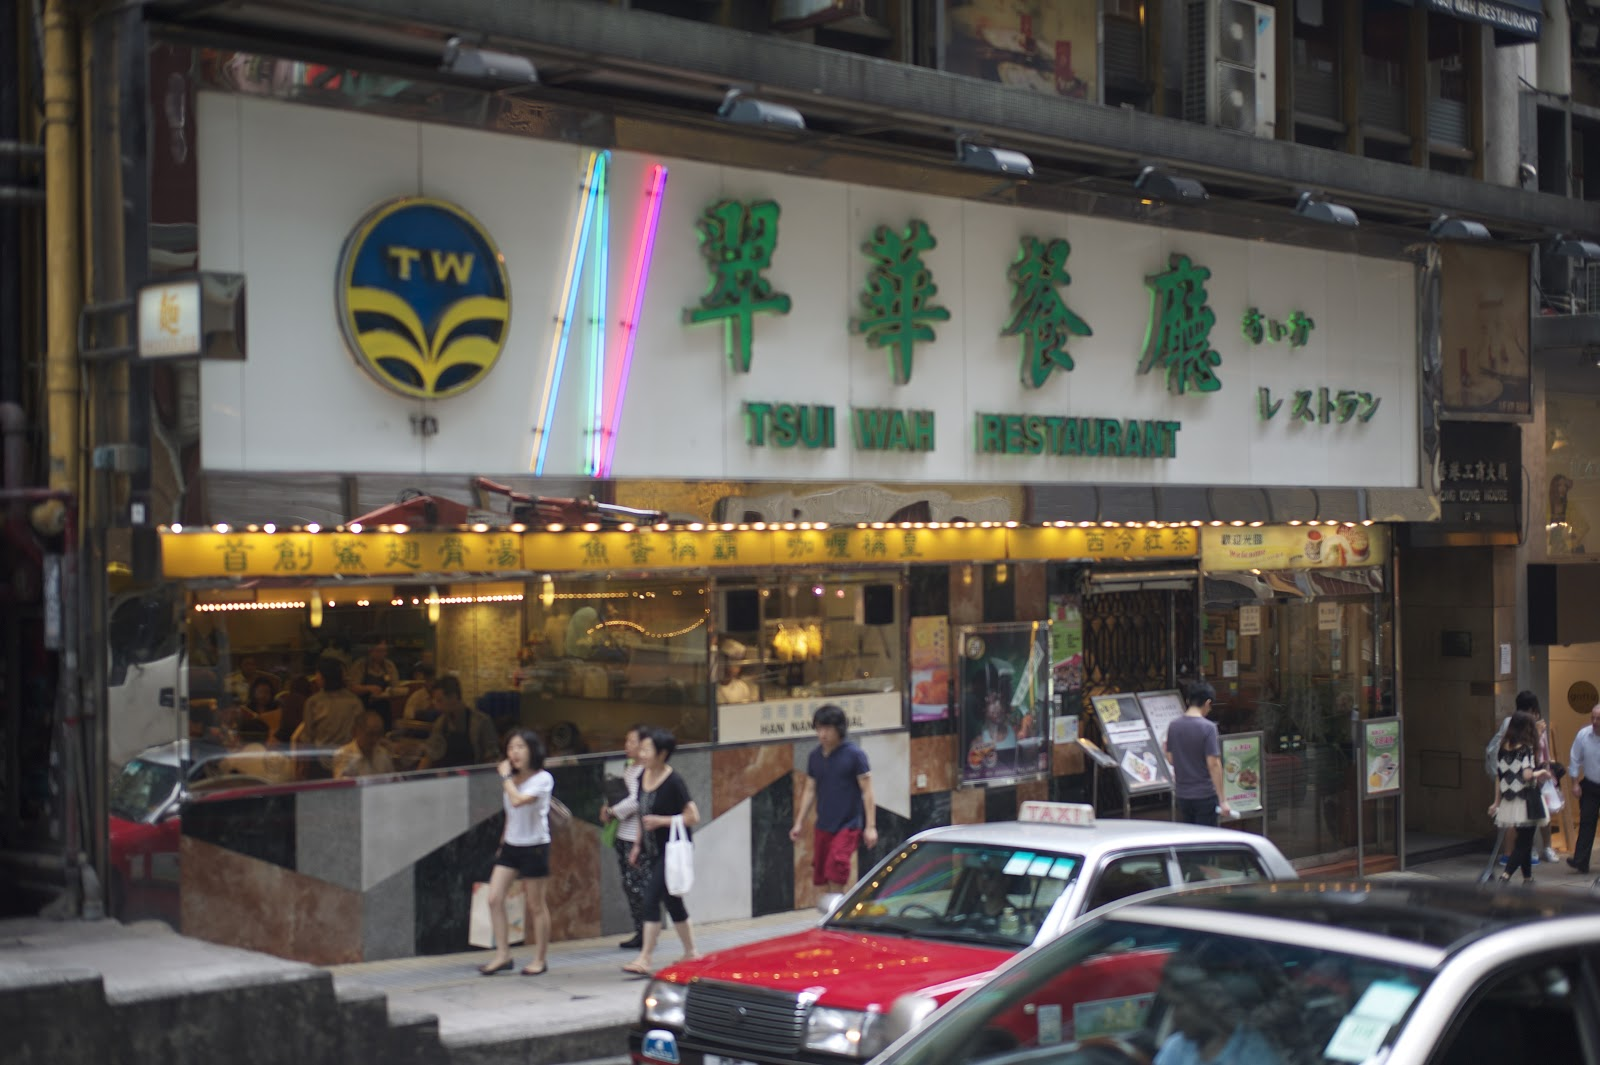 """how does the cha chaan teng hong The mini wan chai is not a dedicated food tour, but we do eat we begin with a tasty sampling of brunch at a local """"cha chaan teng"""" or hong kong style coffeeshop."""